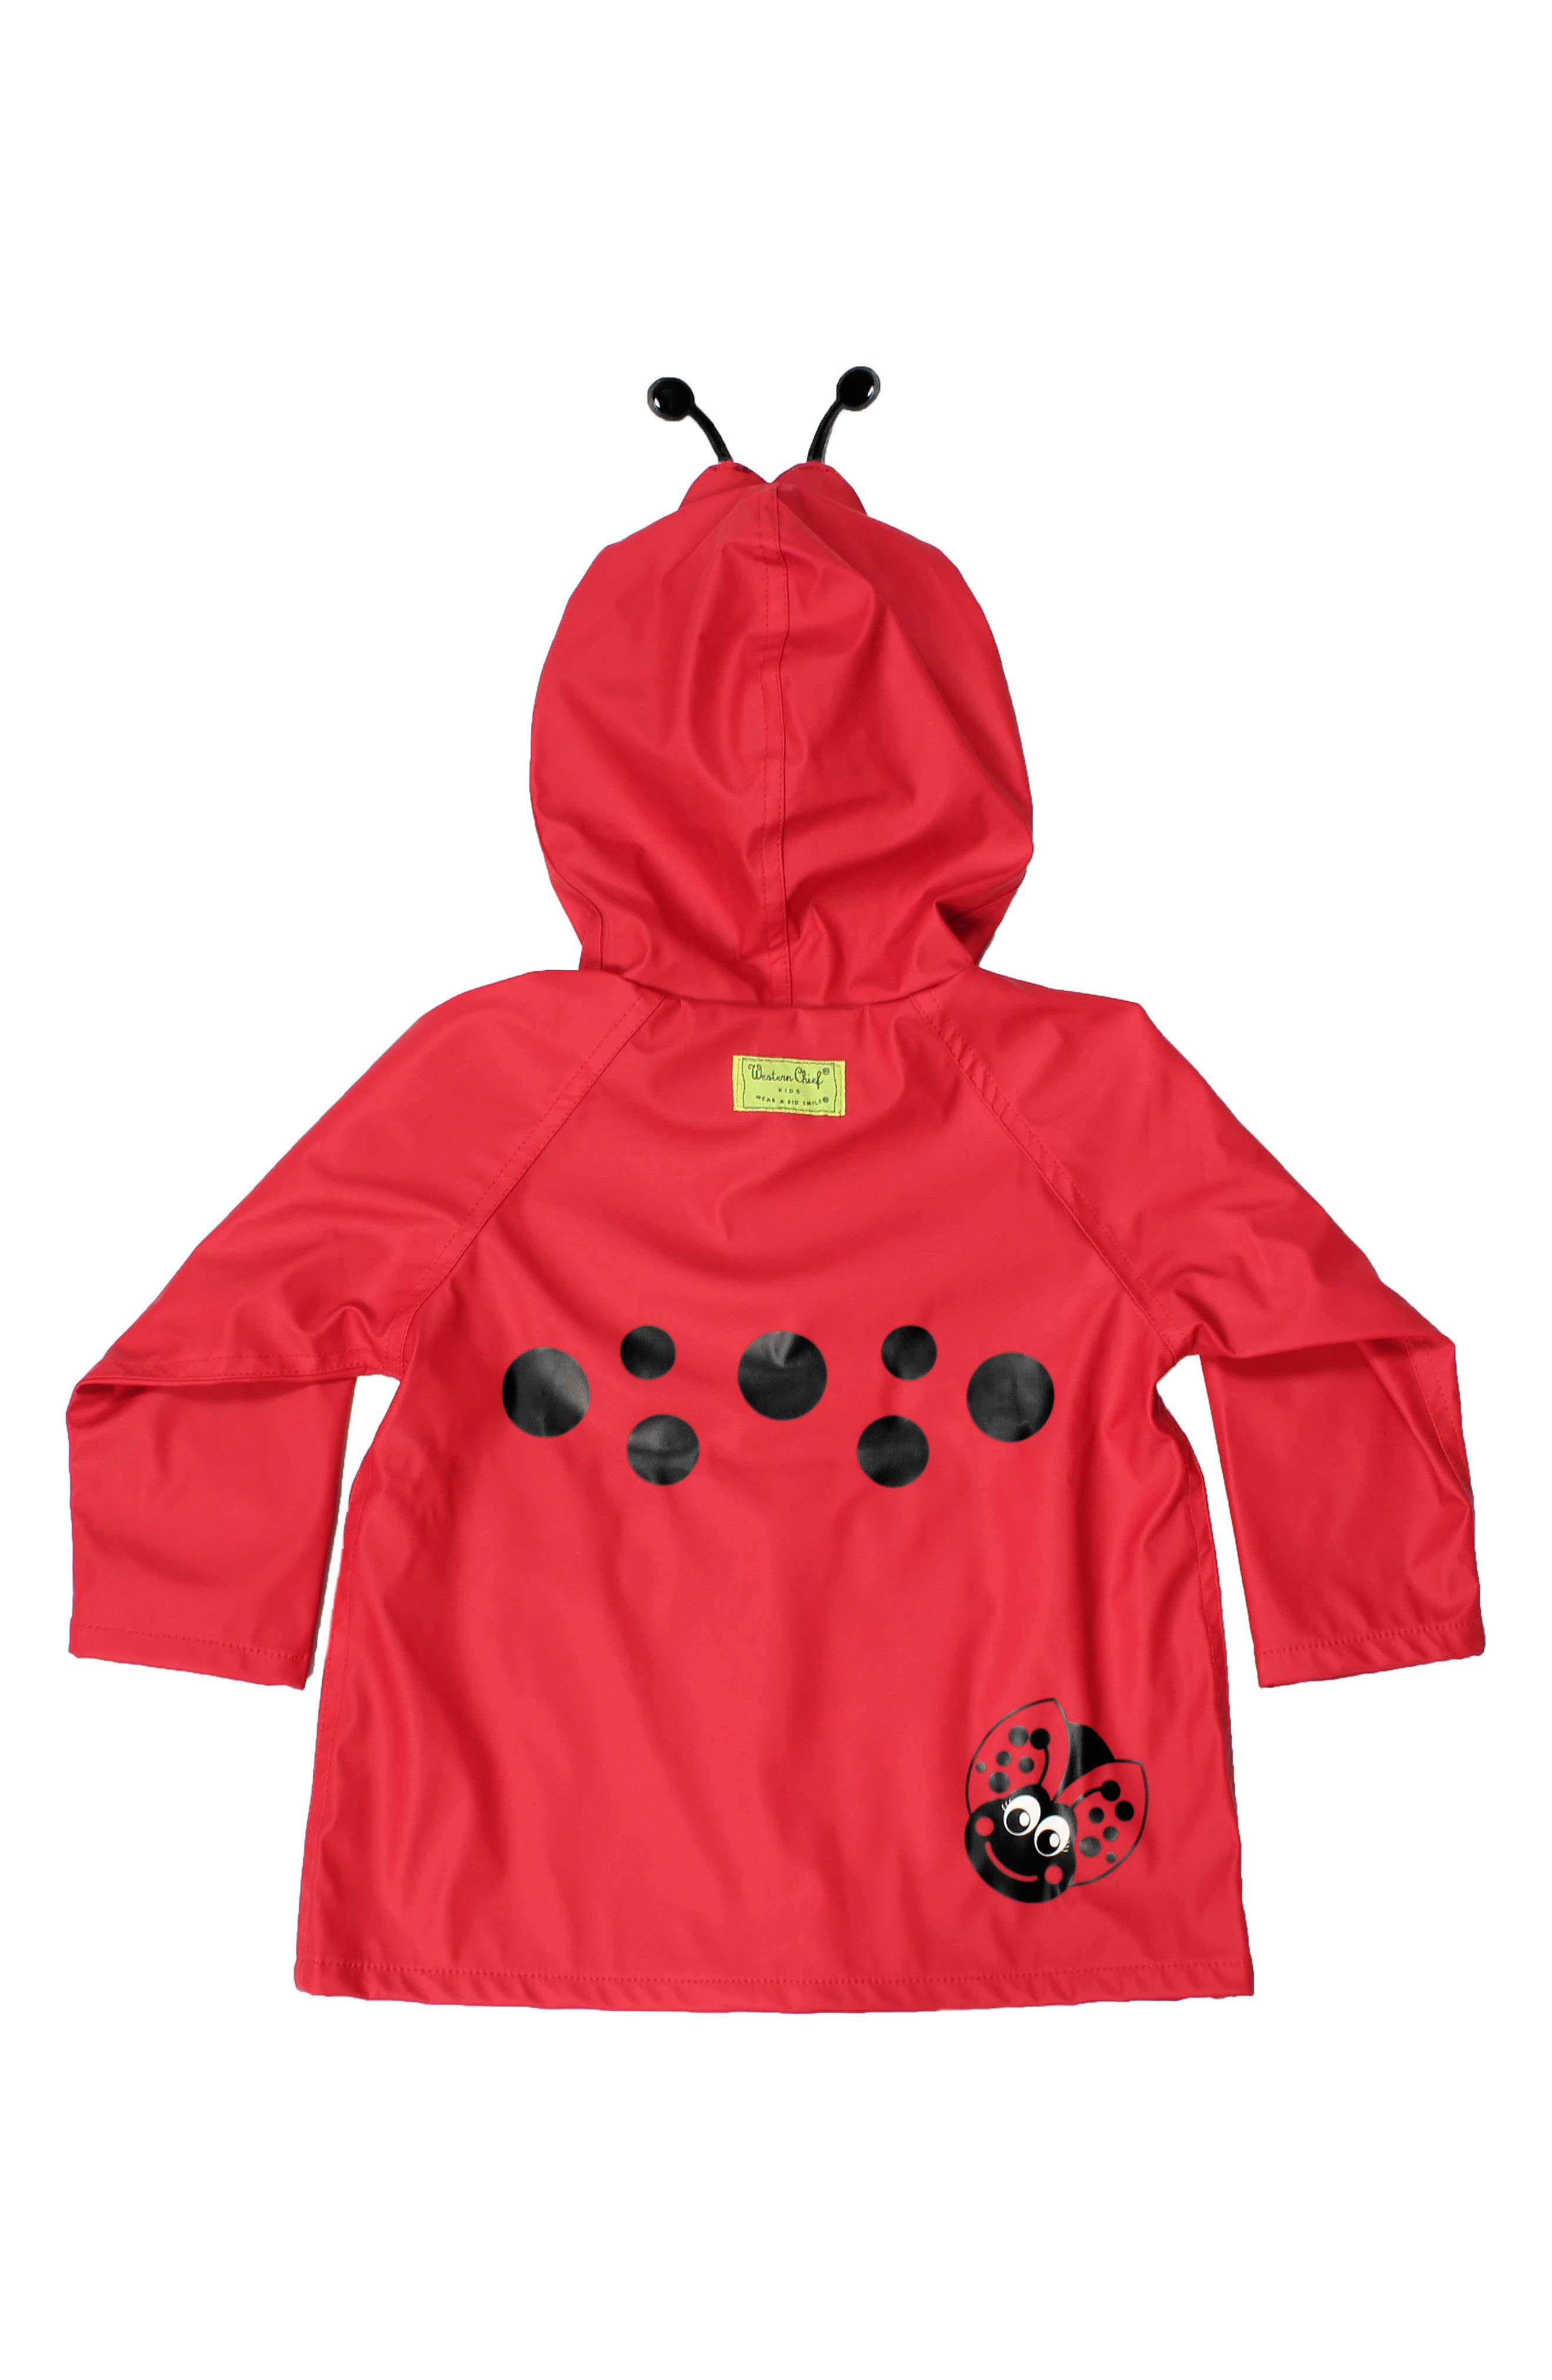 WESTERN CHIEF, Ladybug Hooded Raincoat, Main thumbnail 1, color, RED